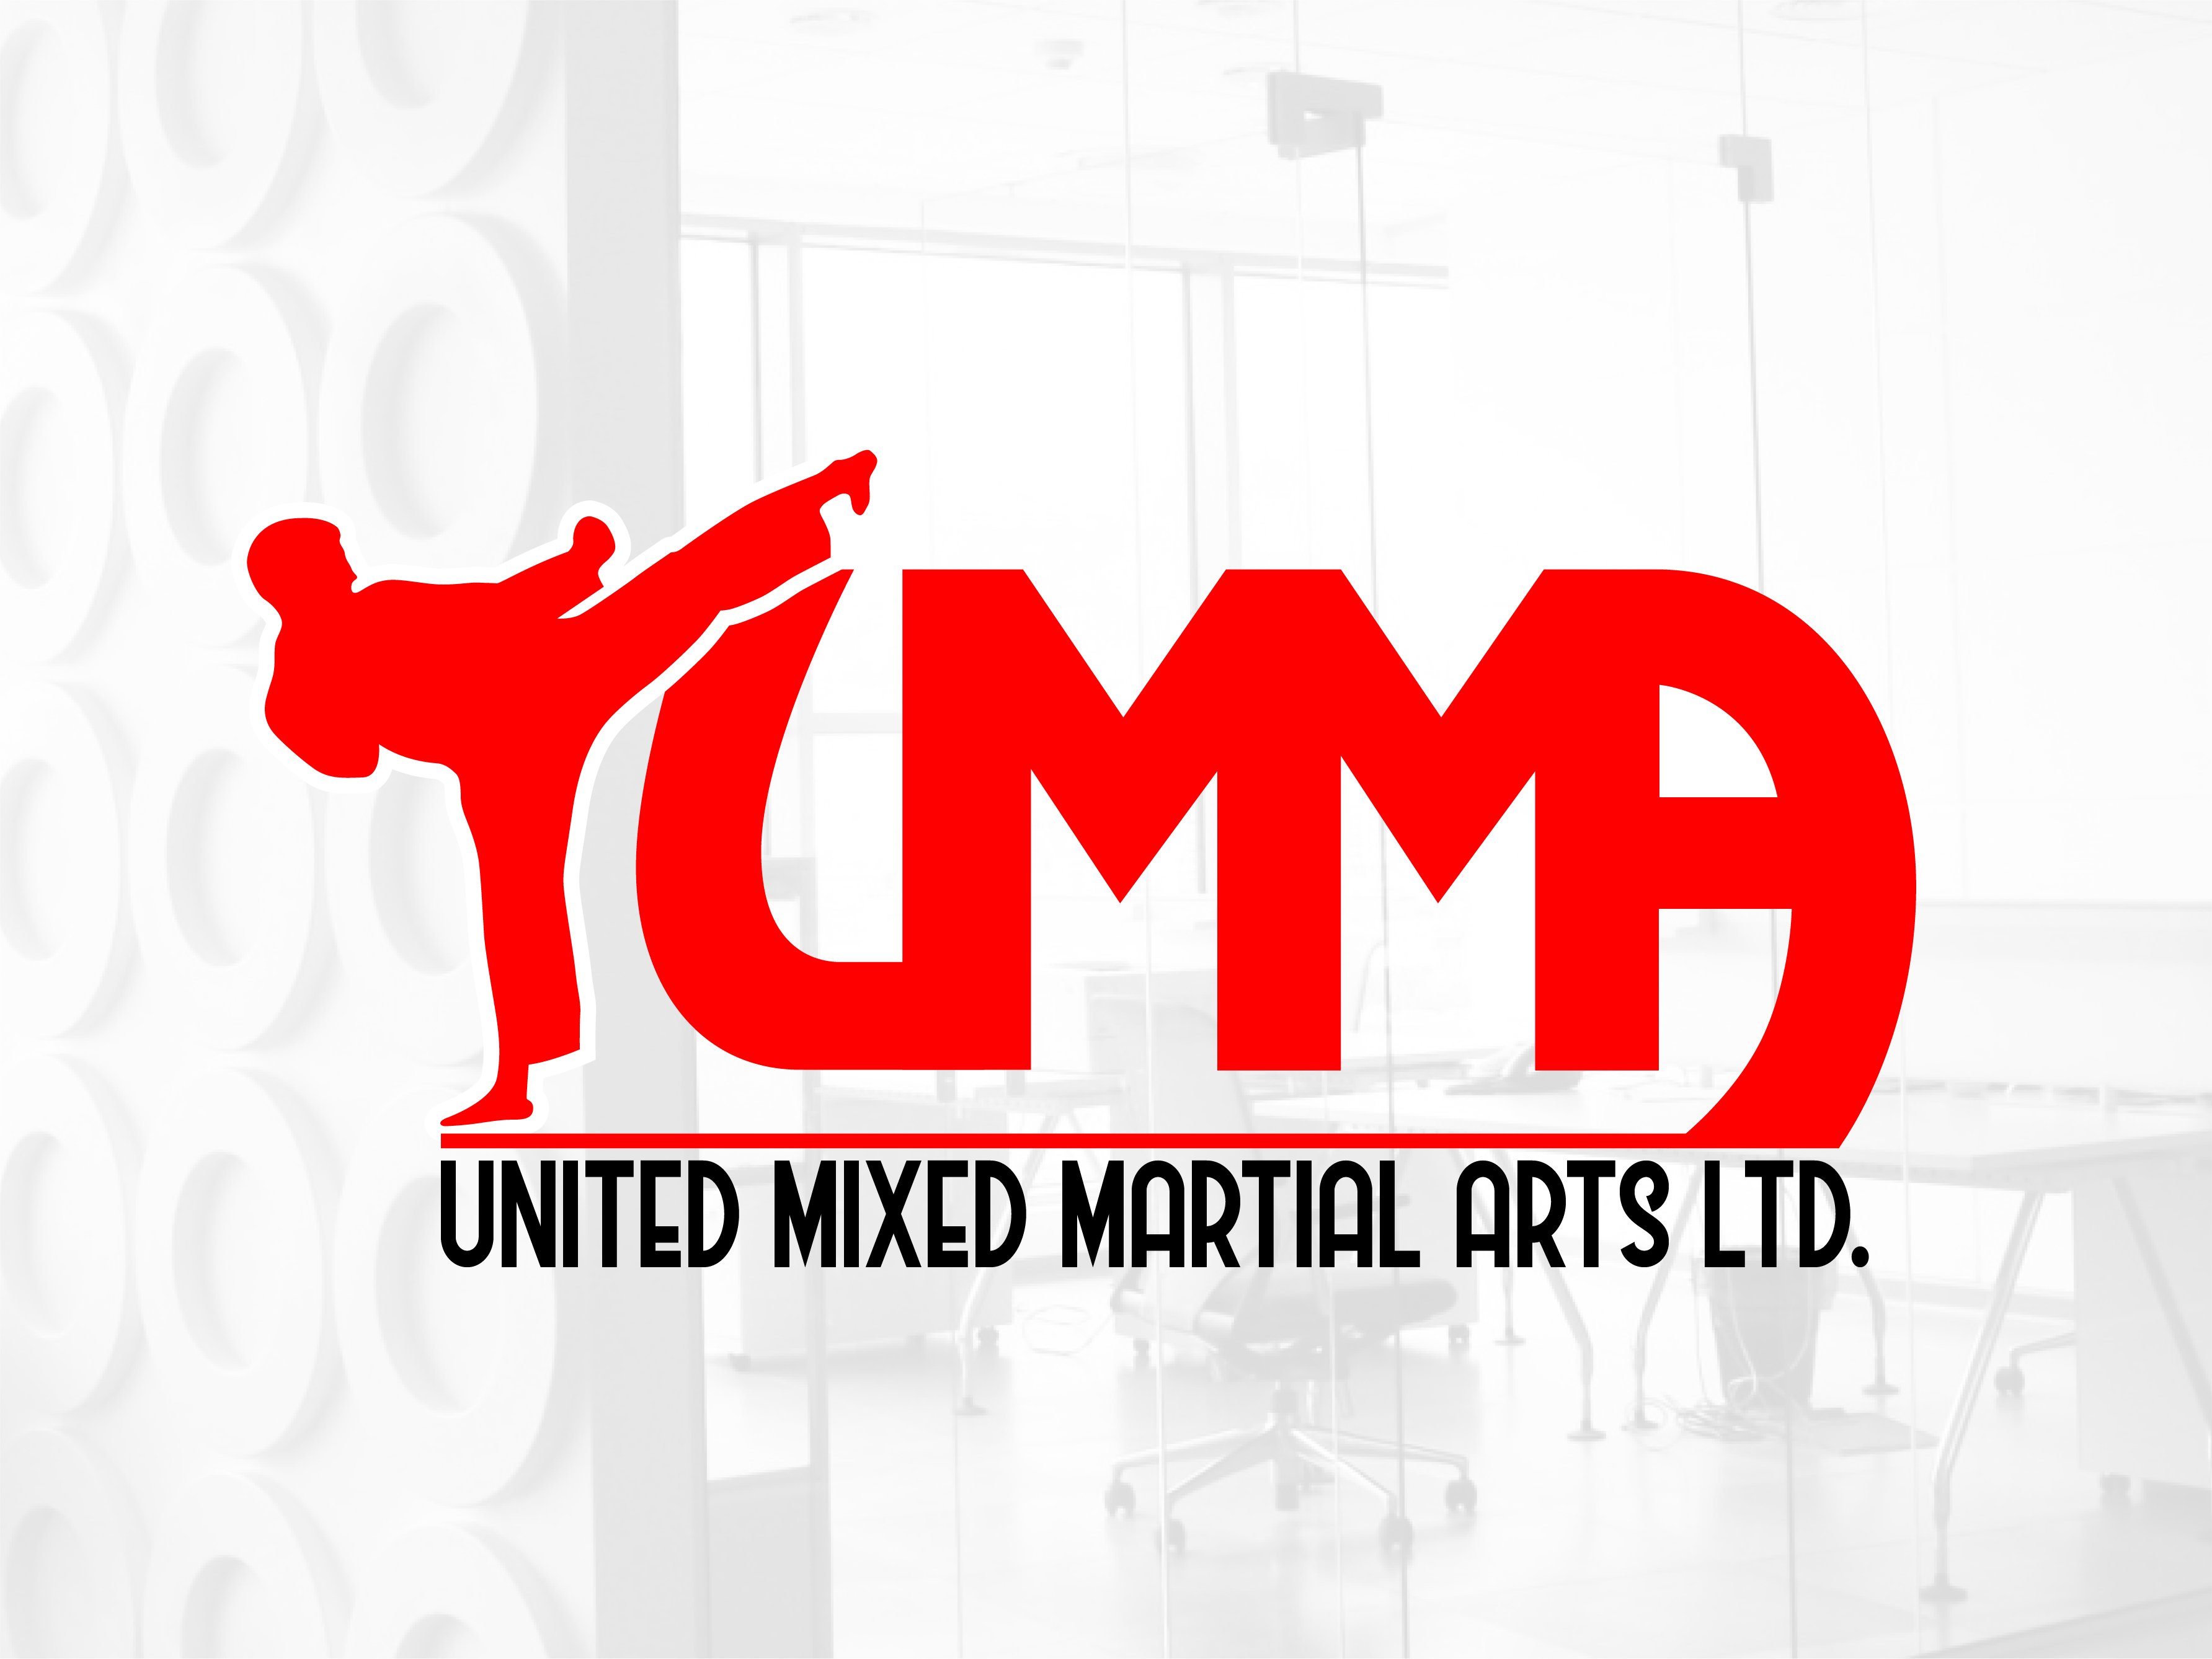 Logo Design by Rob King - Entry No. 41 in the Logo Design Contest Artistic Logo Design for United Mixed Martial Arts Ltd..